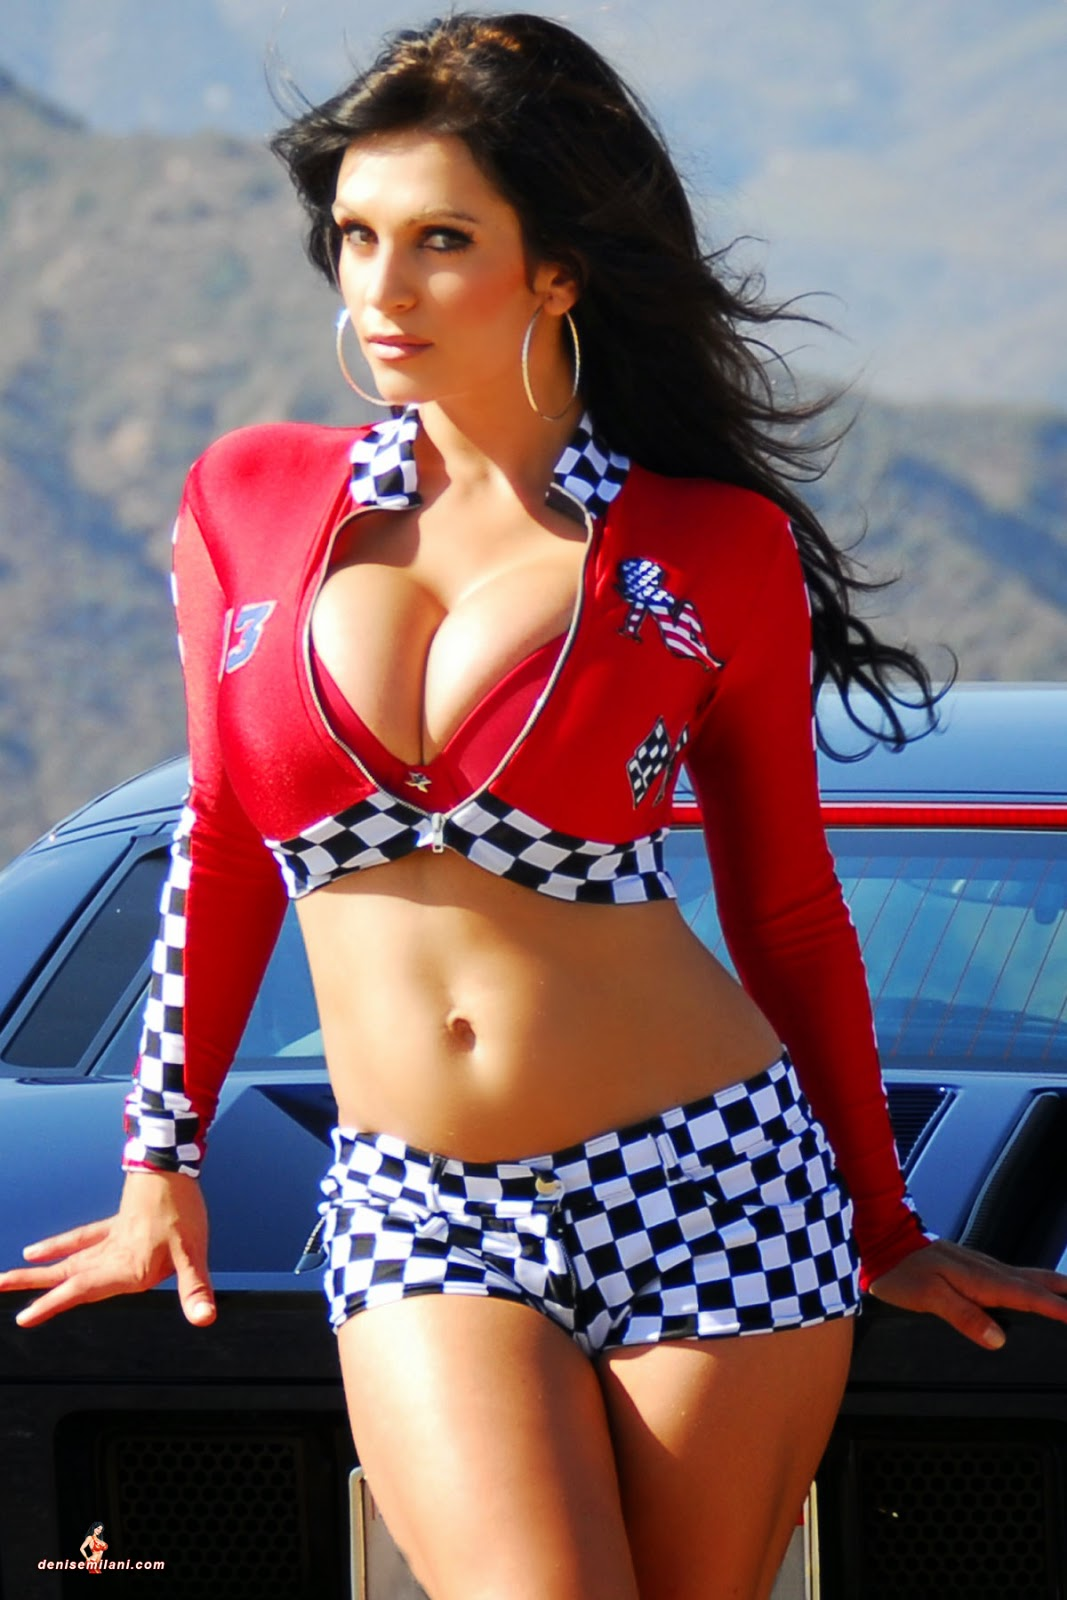 Big tits rally racing - 1 5